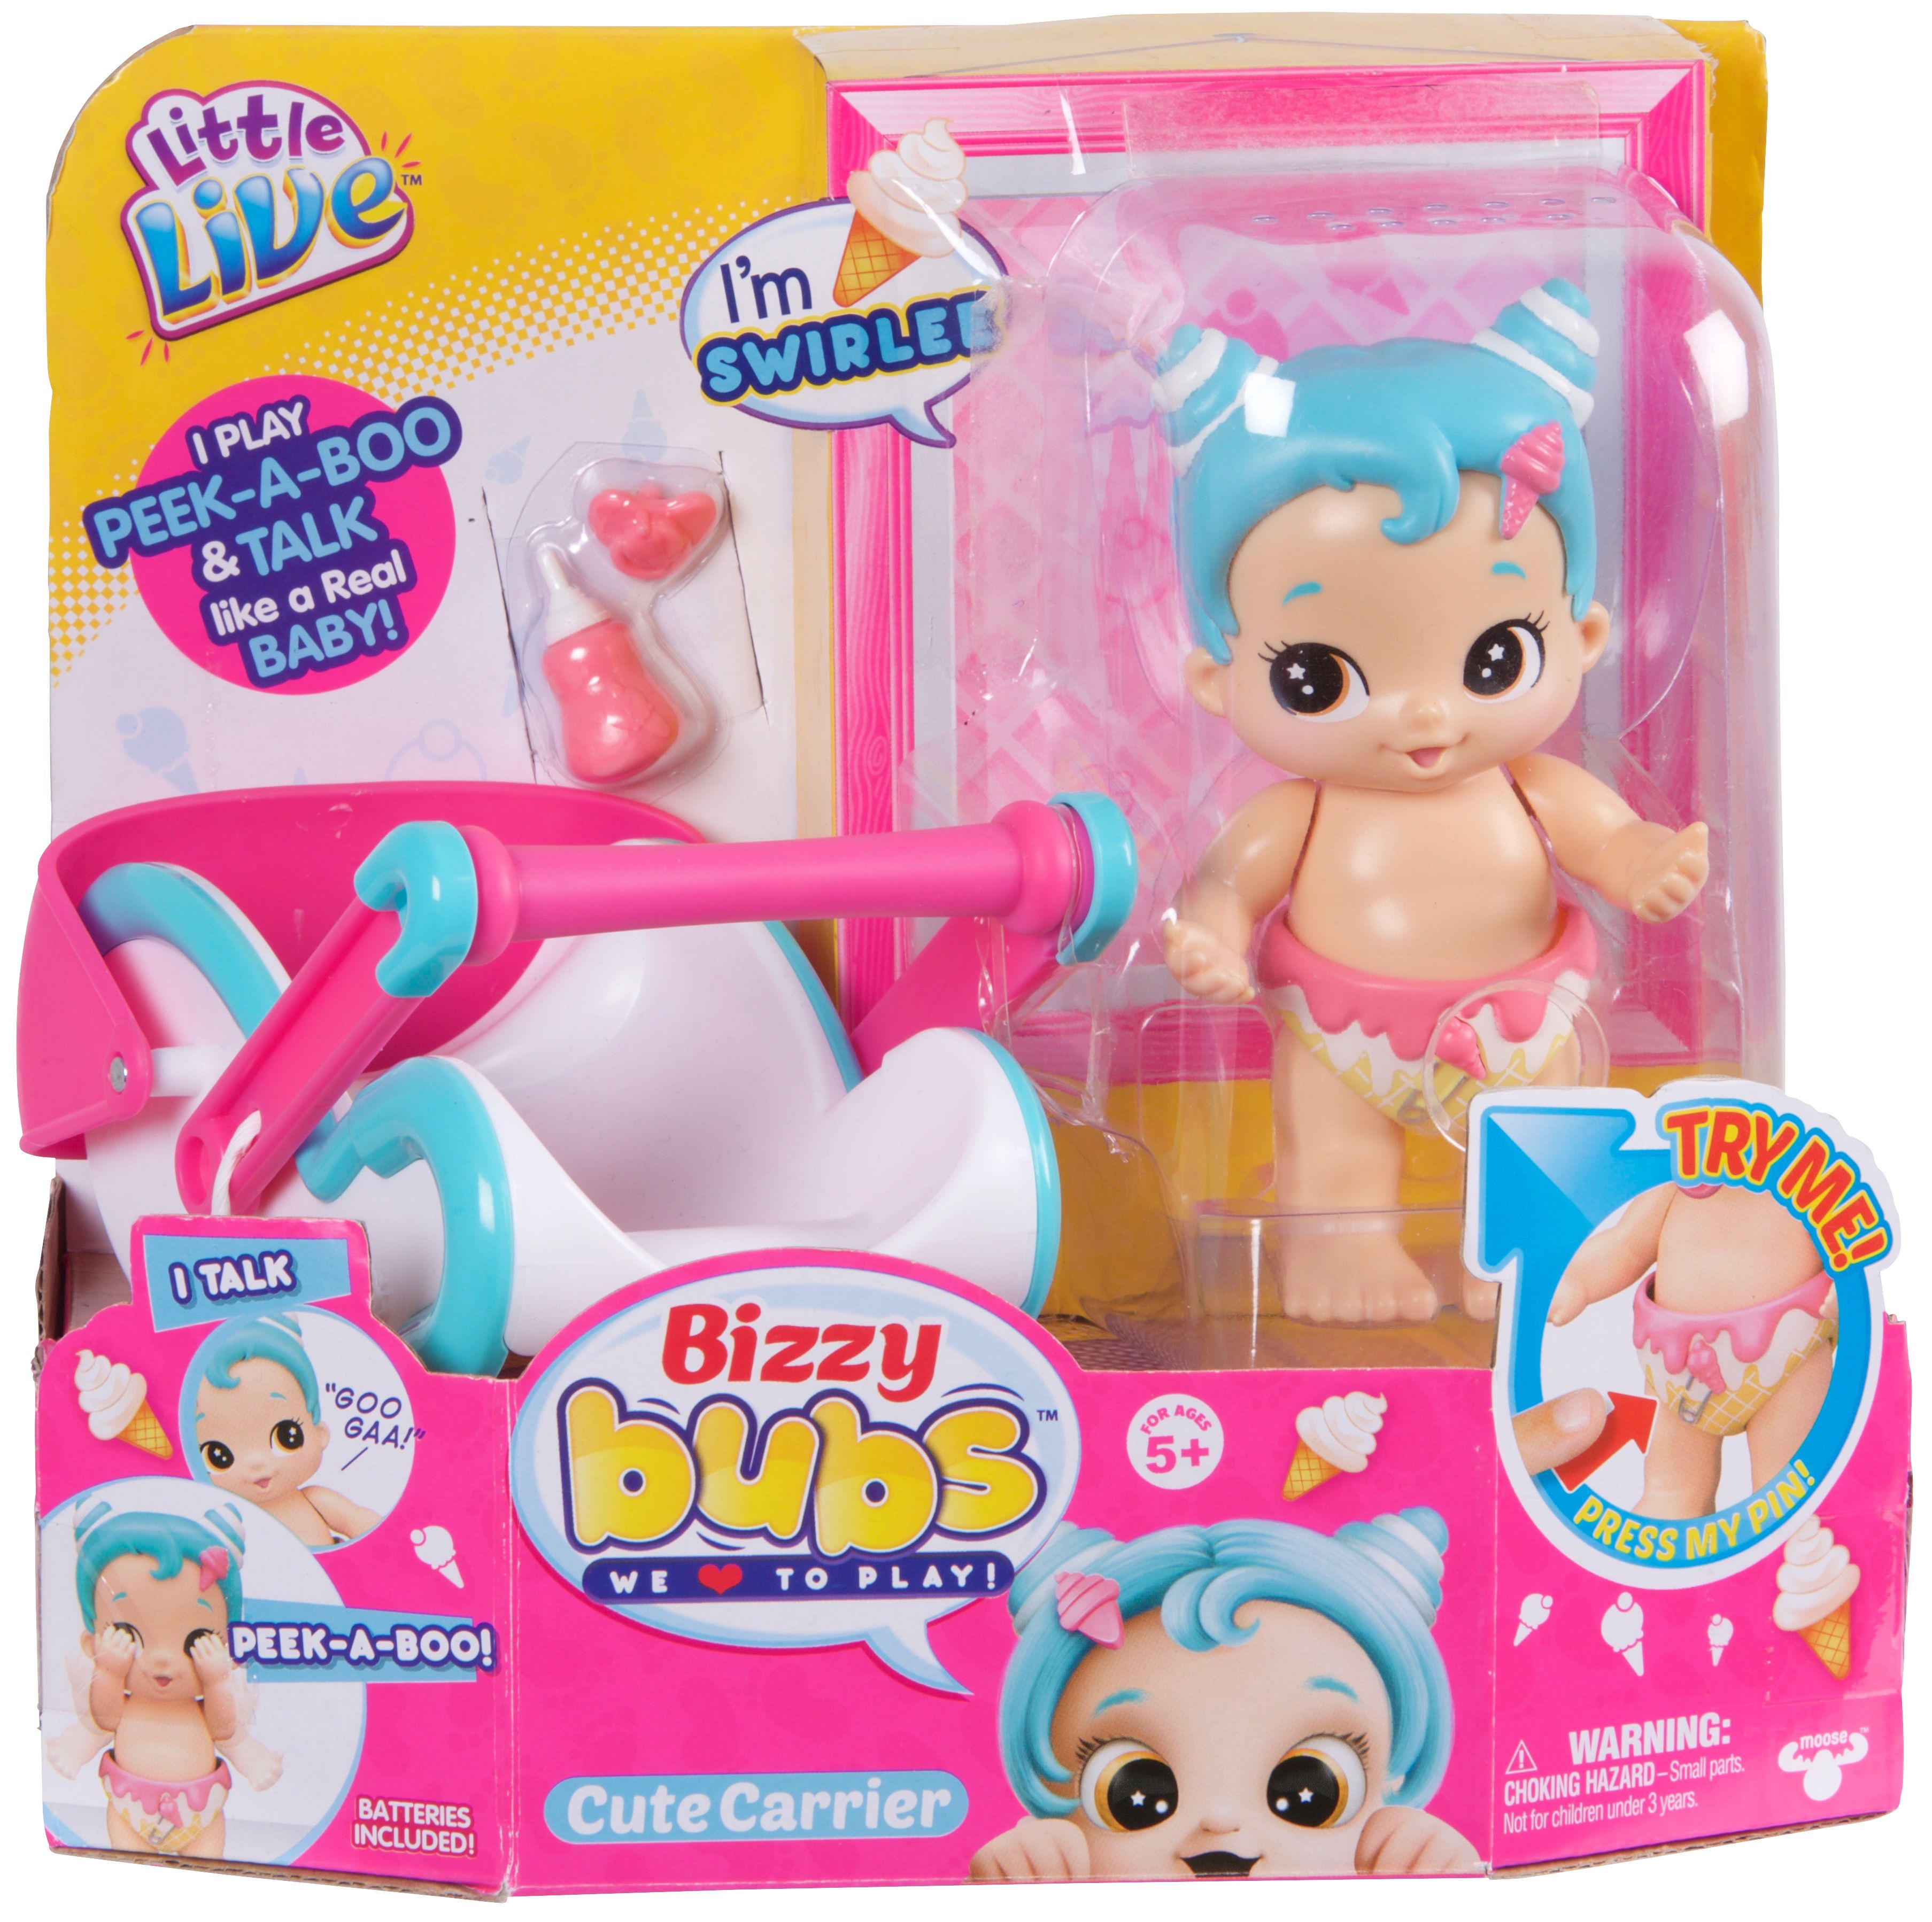 Little Live Babies Baby Girl Doll Swirlee With Carrier Bottle And Pacifier Walmart Com In 2020 Peek A Boo Baby Live Baby Dolls Little Live Pets